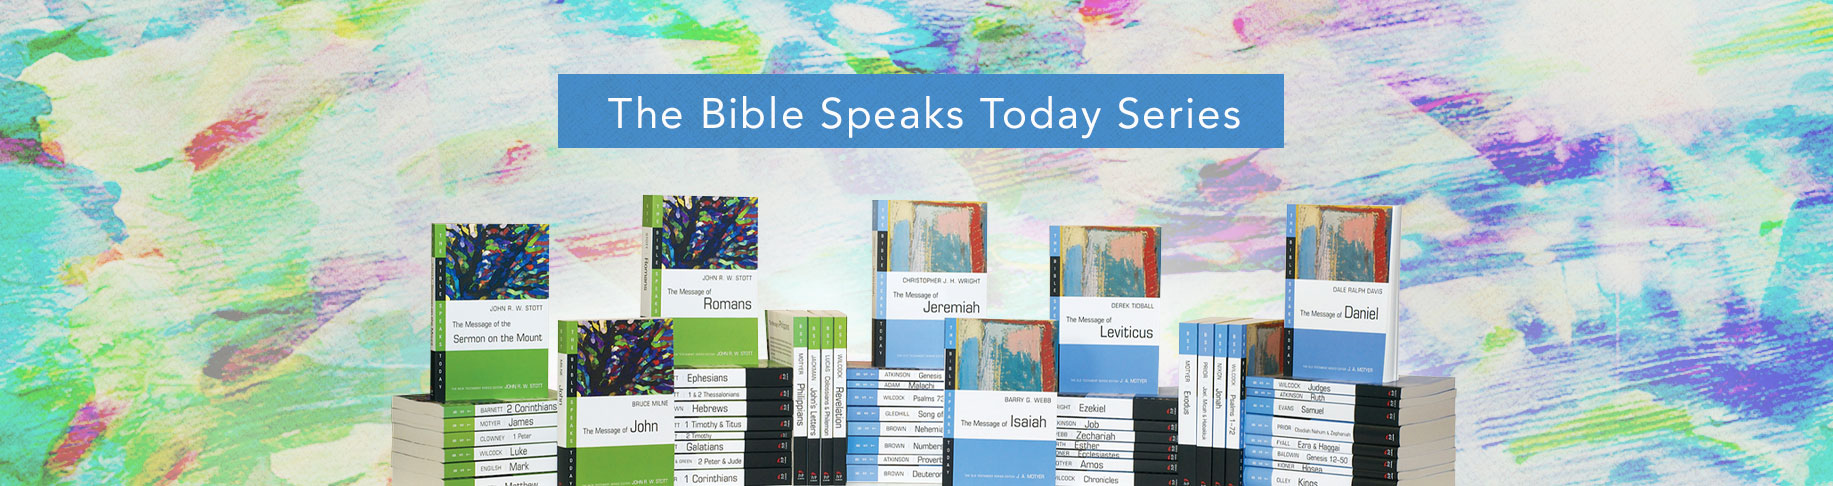 The Bible Speaks Today Series